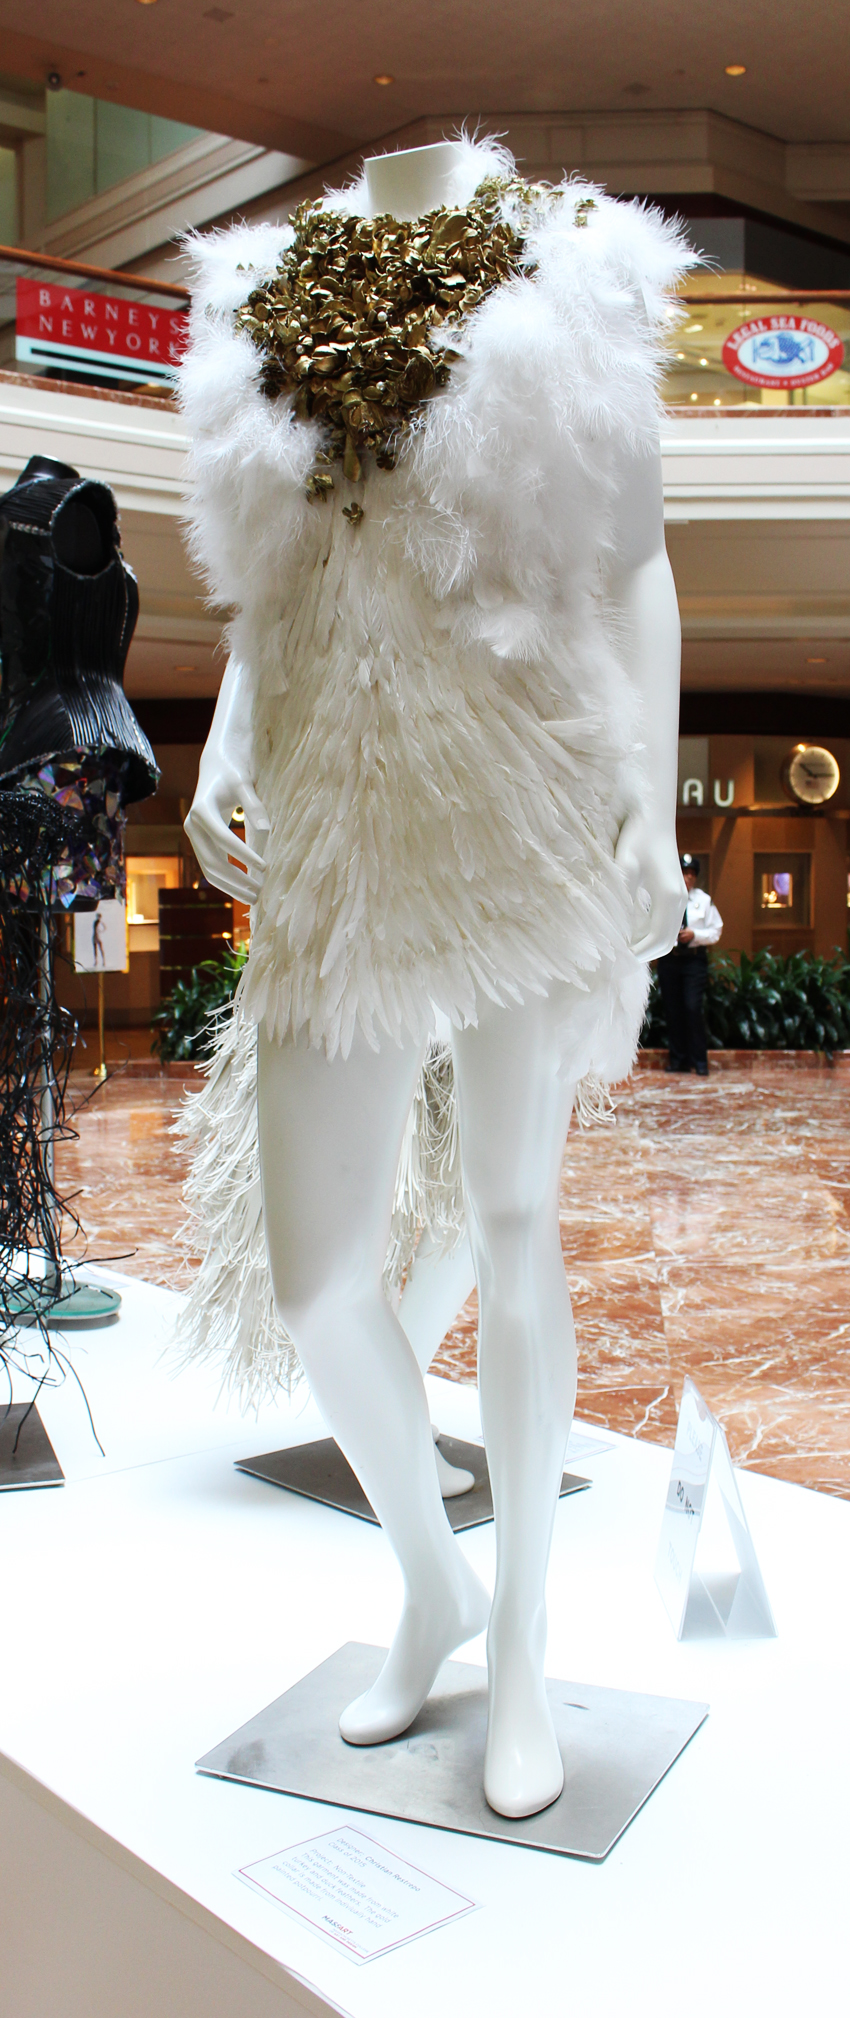 Christian Restrepo's piece made of feathers and painted potpourri wowed at the fashion show when it was modeled by a man.